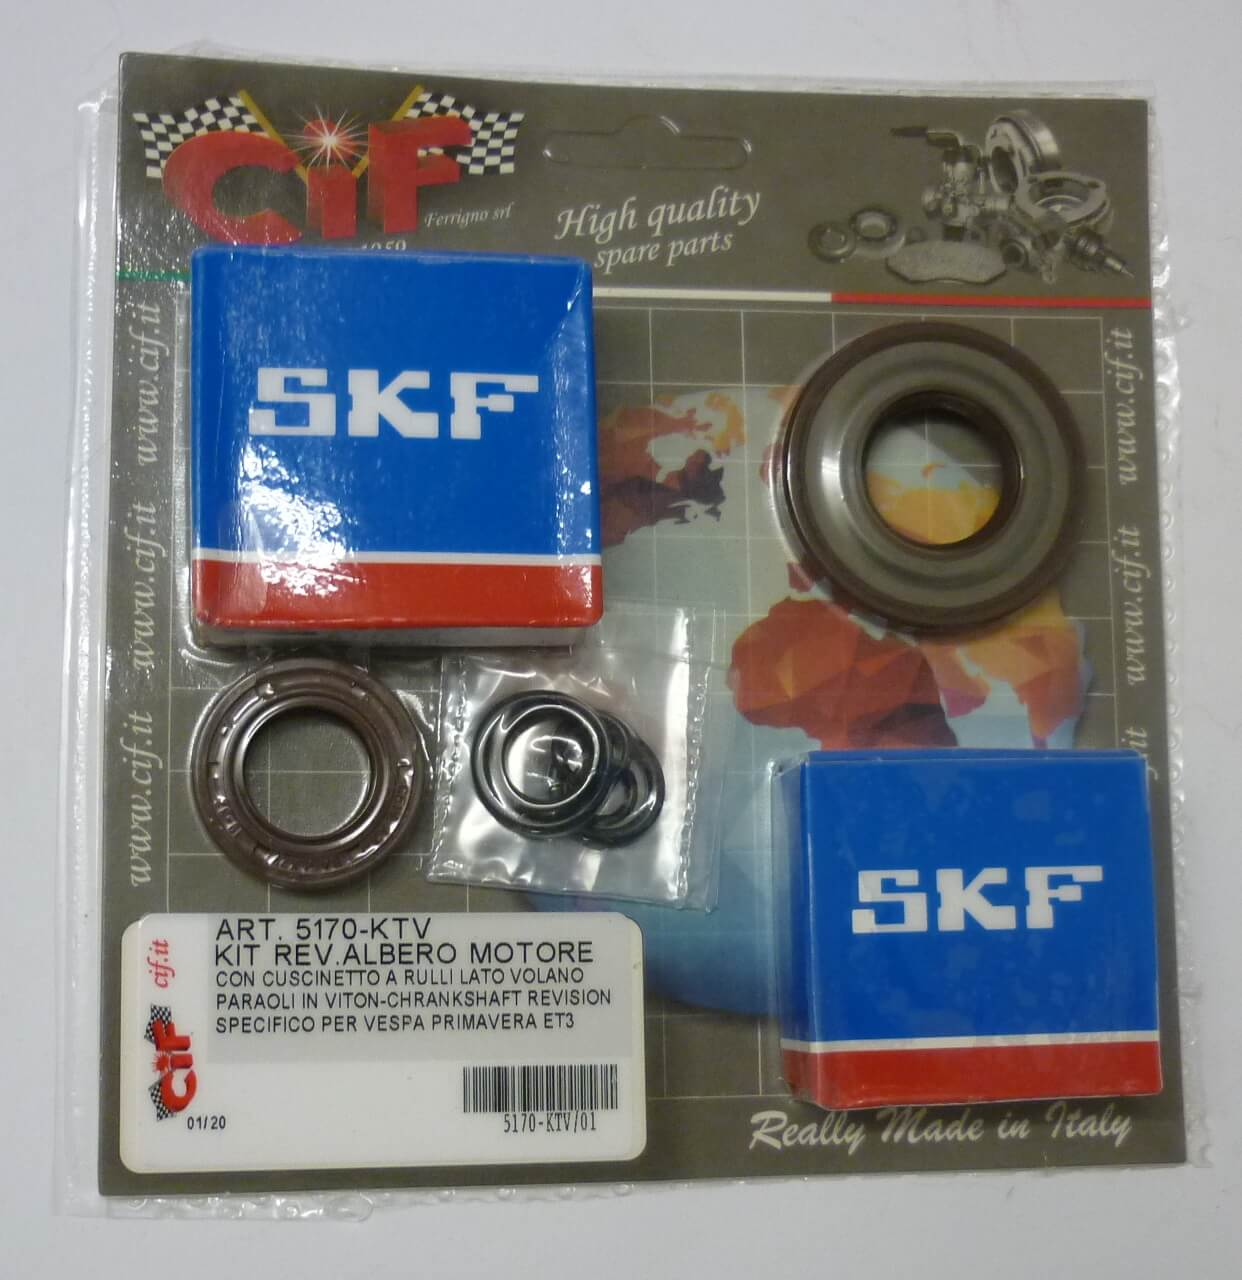 Kit crankshaft revision kit, VITON, Vespa 125 Primavera - ET3